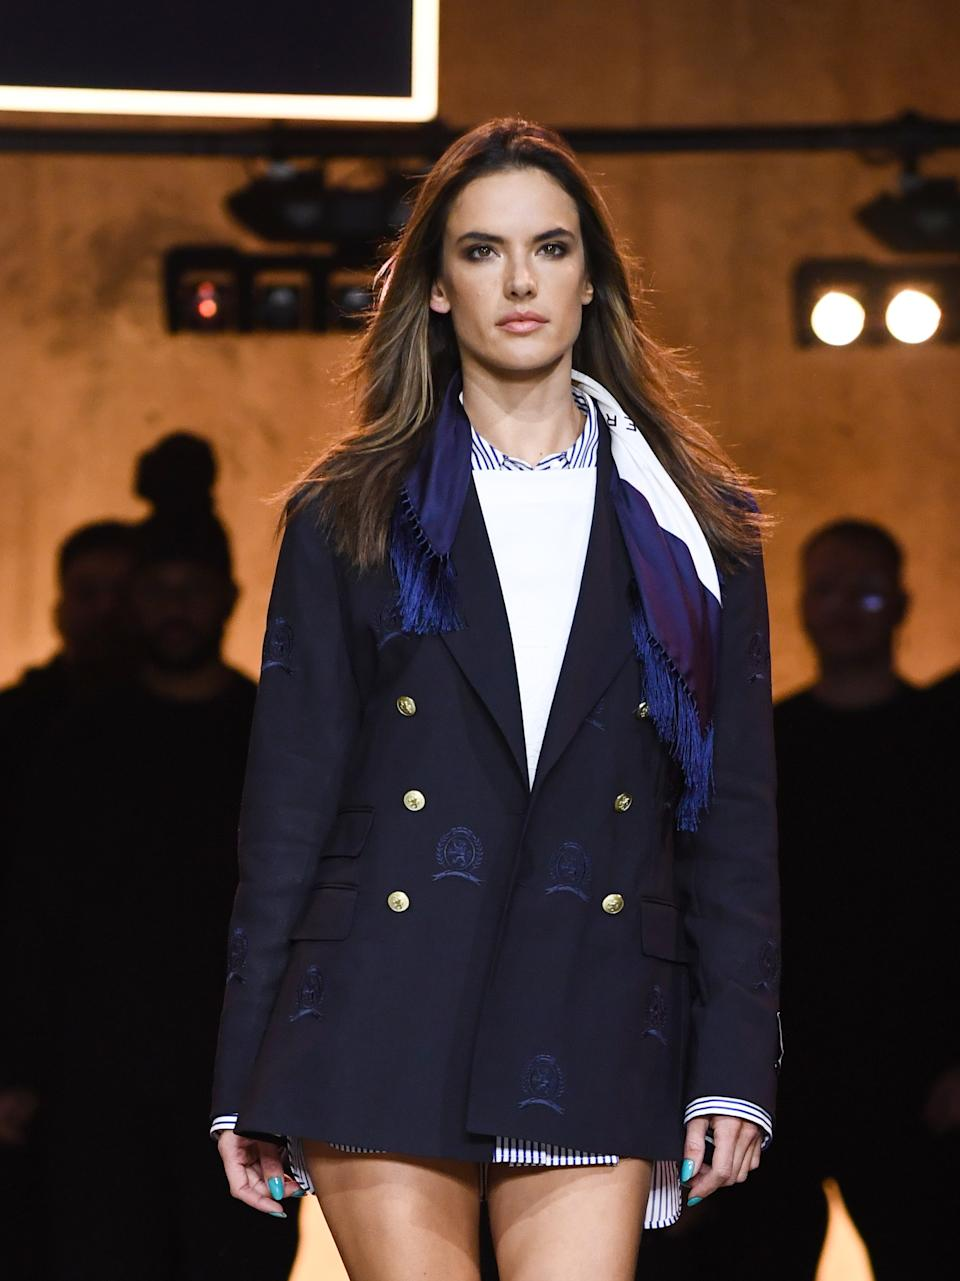 Alessandra Ambrosio walks the runway at the Tommy Hilfiger show during London Fashion Week. (Getty Images)